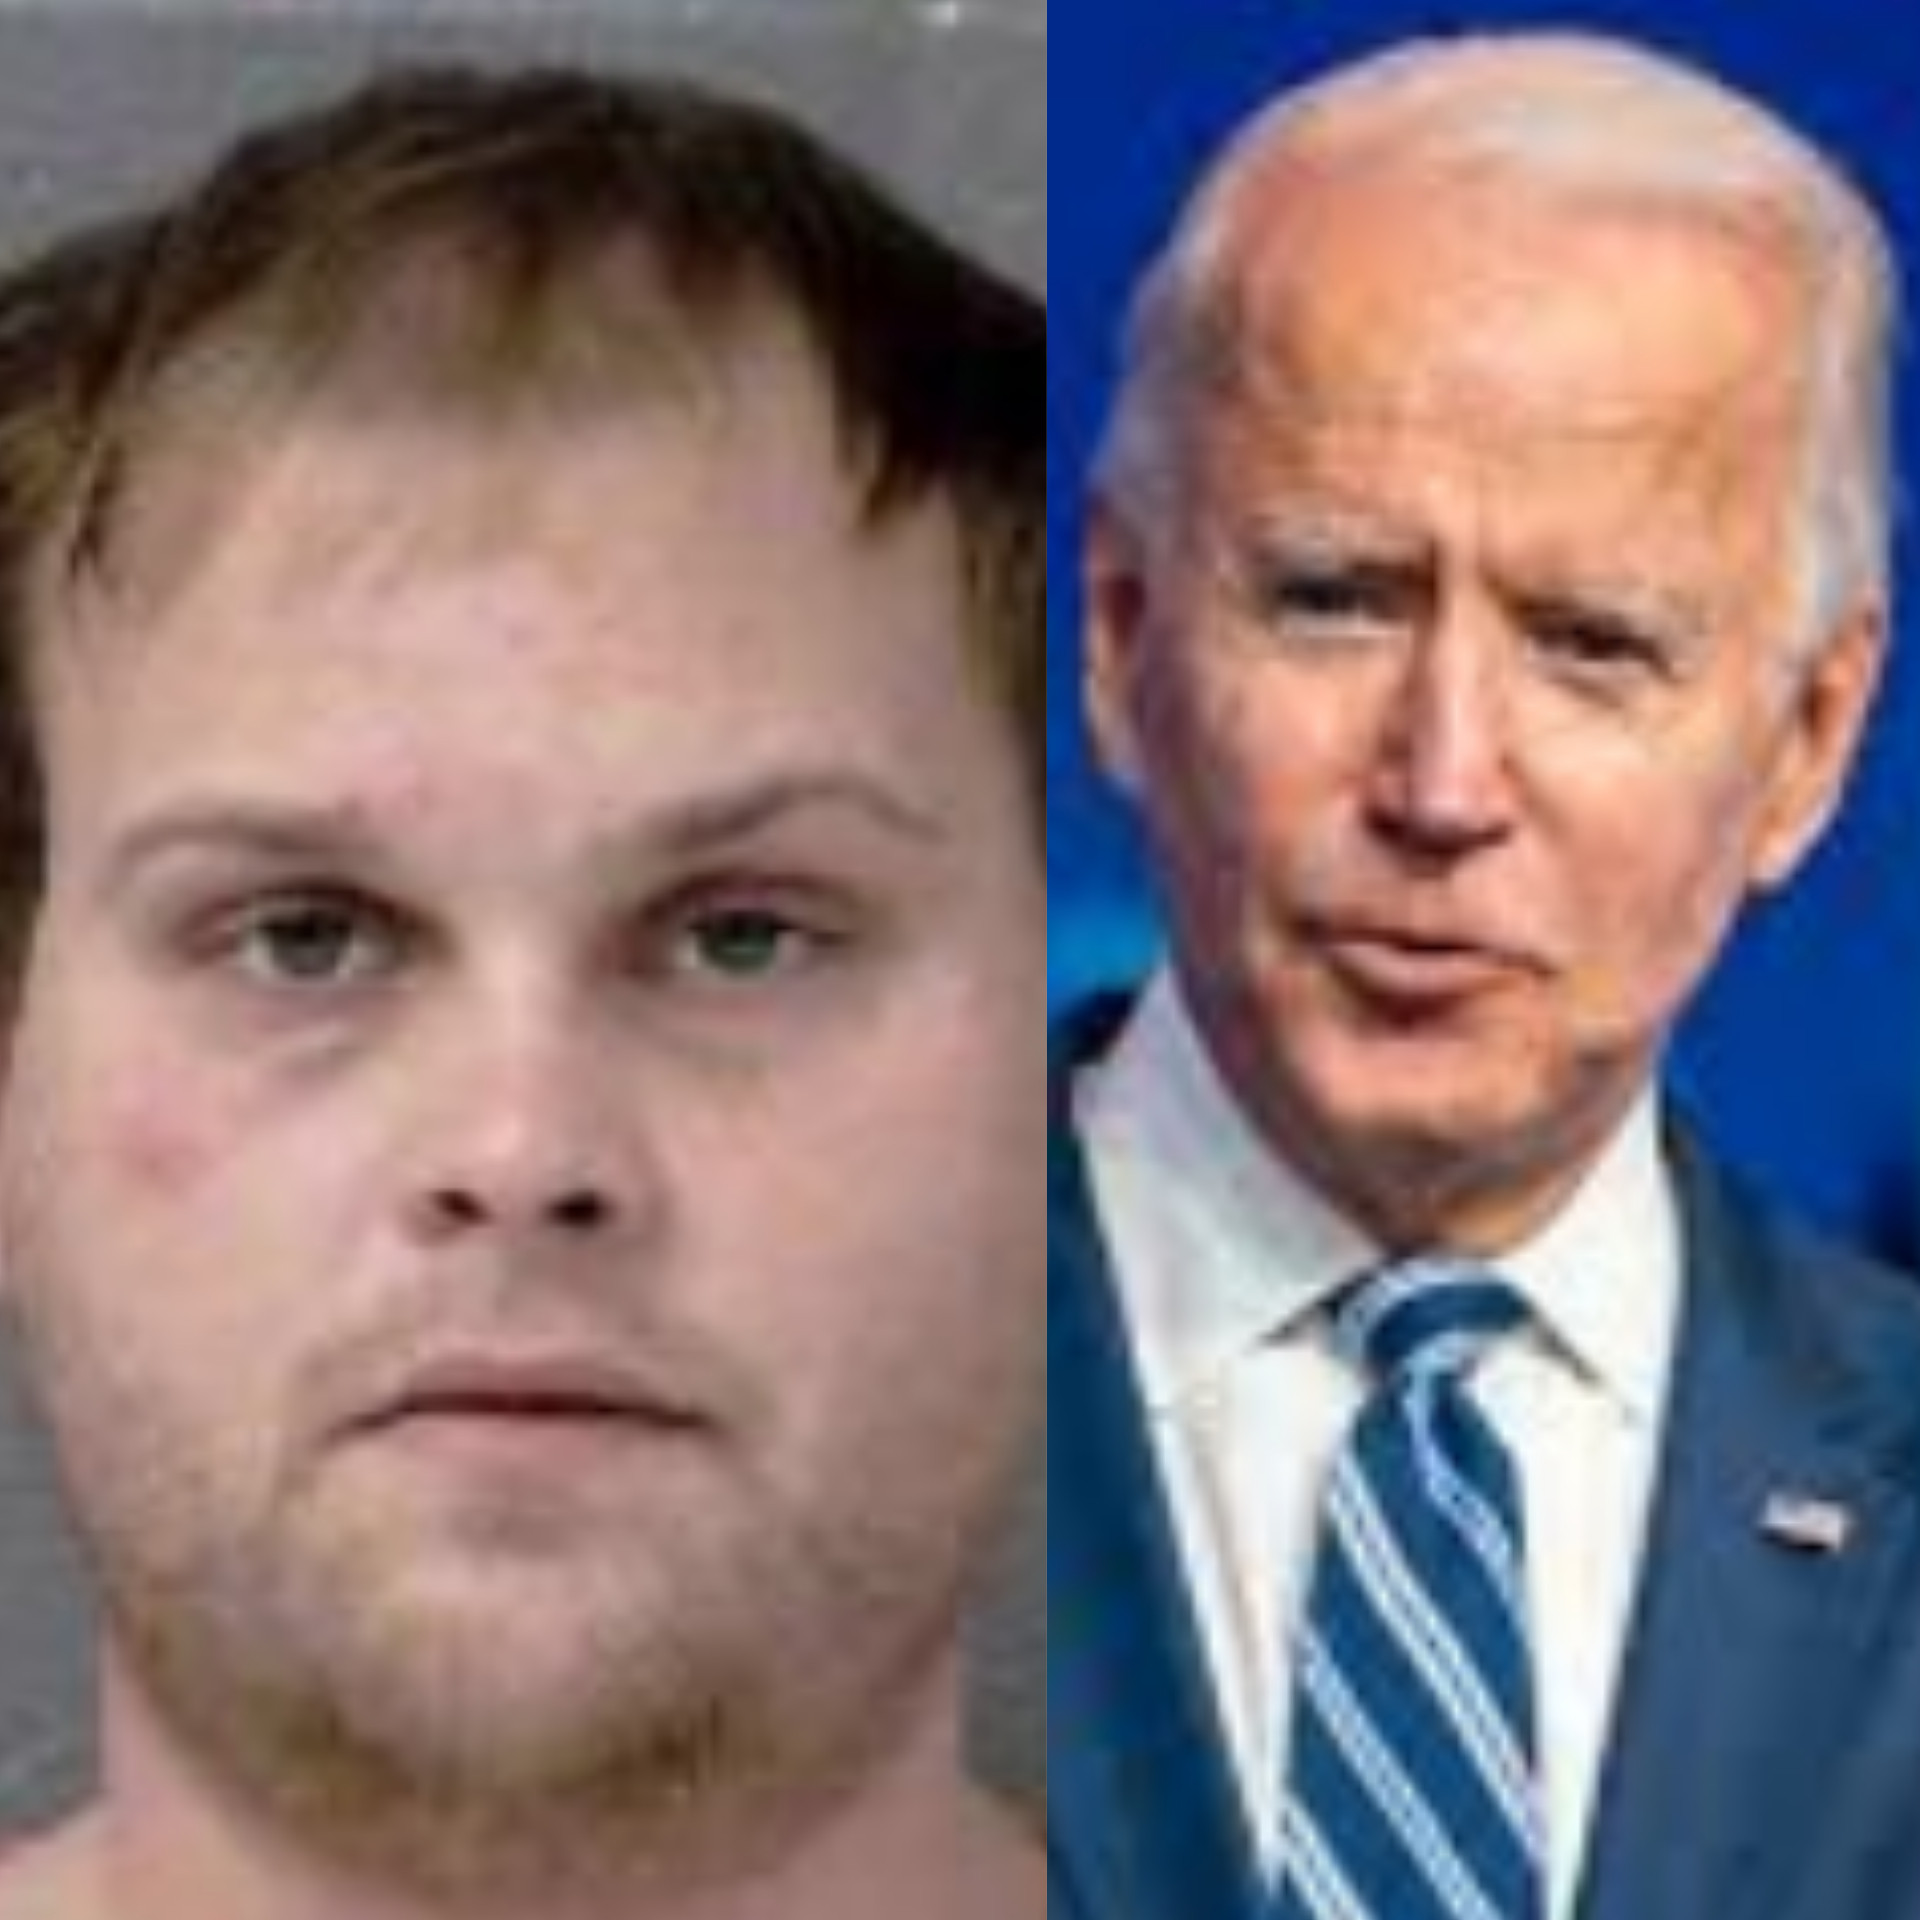 Man charged with threatening to kill US President, Joe Biden